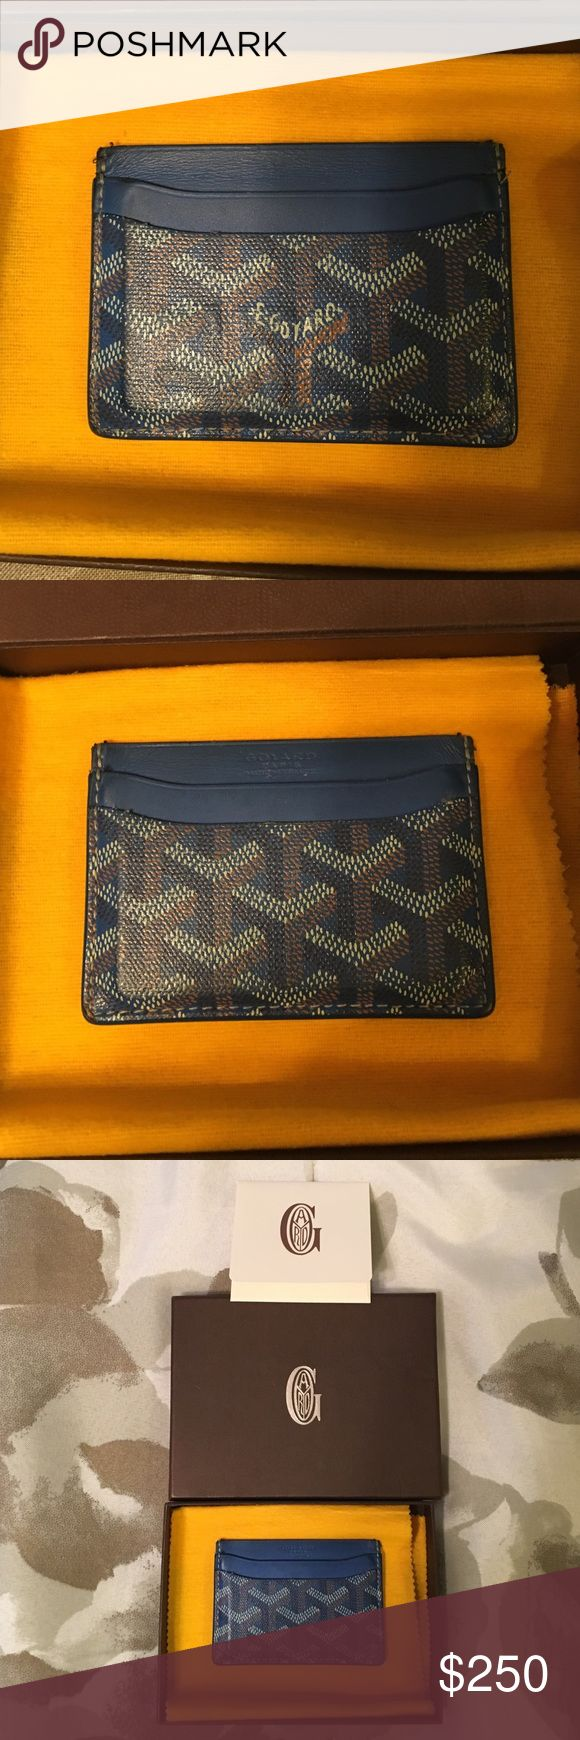 Goyard Card Holder Blue Goyard Card Holder, 4 side slots and 1 middle slot. Some normal wear but in excellent condition with box, care instructions included. Was purchased at Barney's New York. Goyard Accessories Key & Card Holders